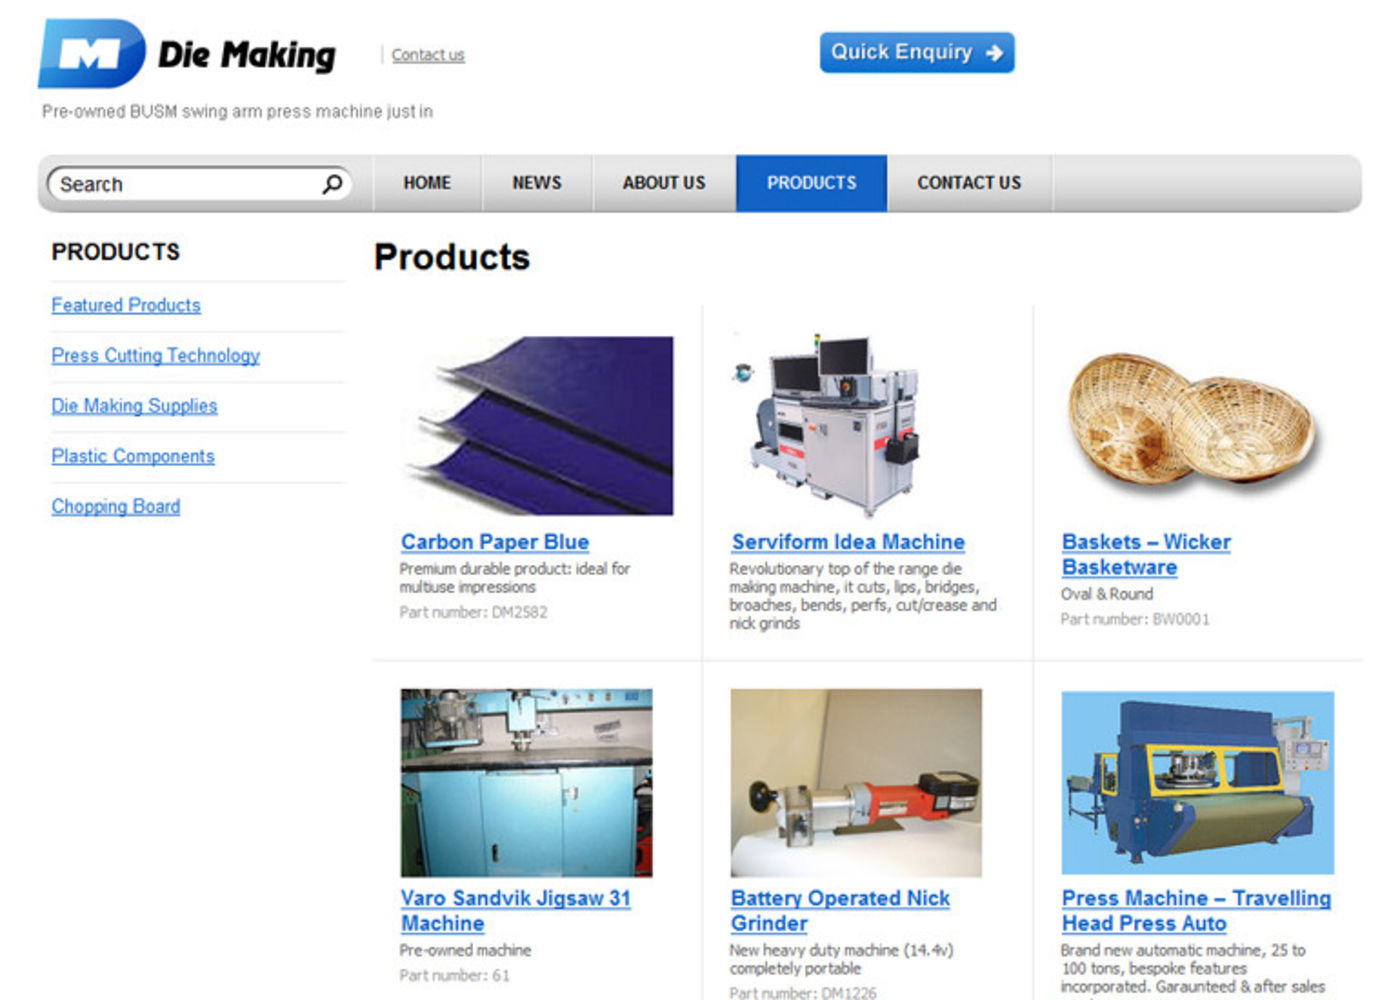 Die Making Products